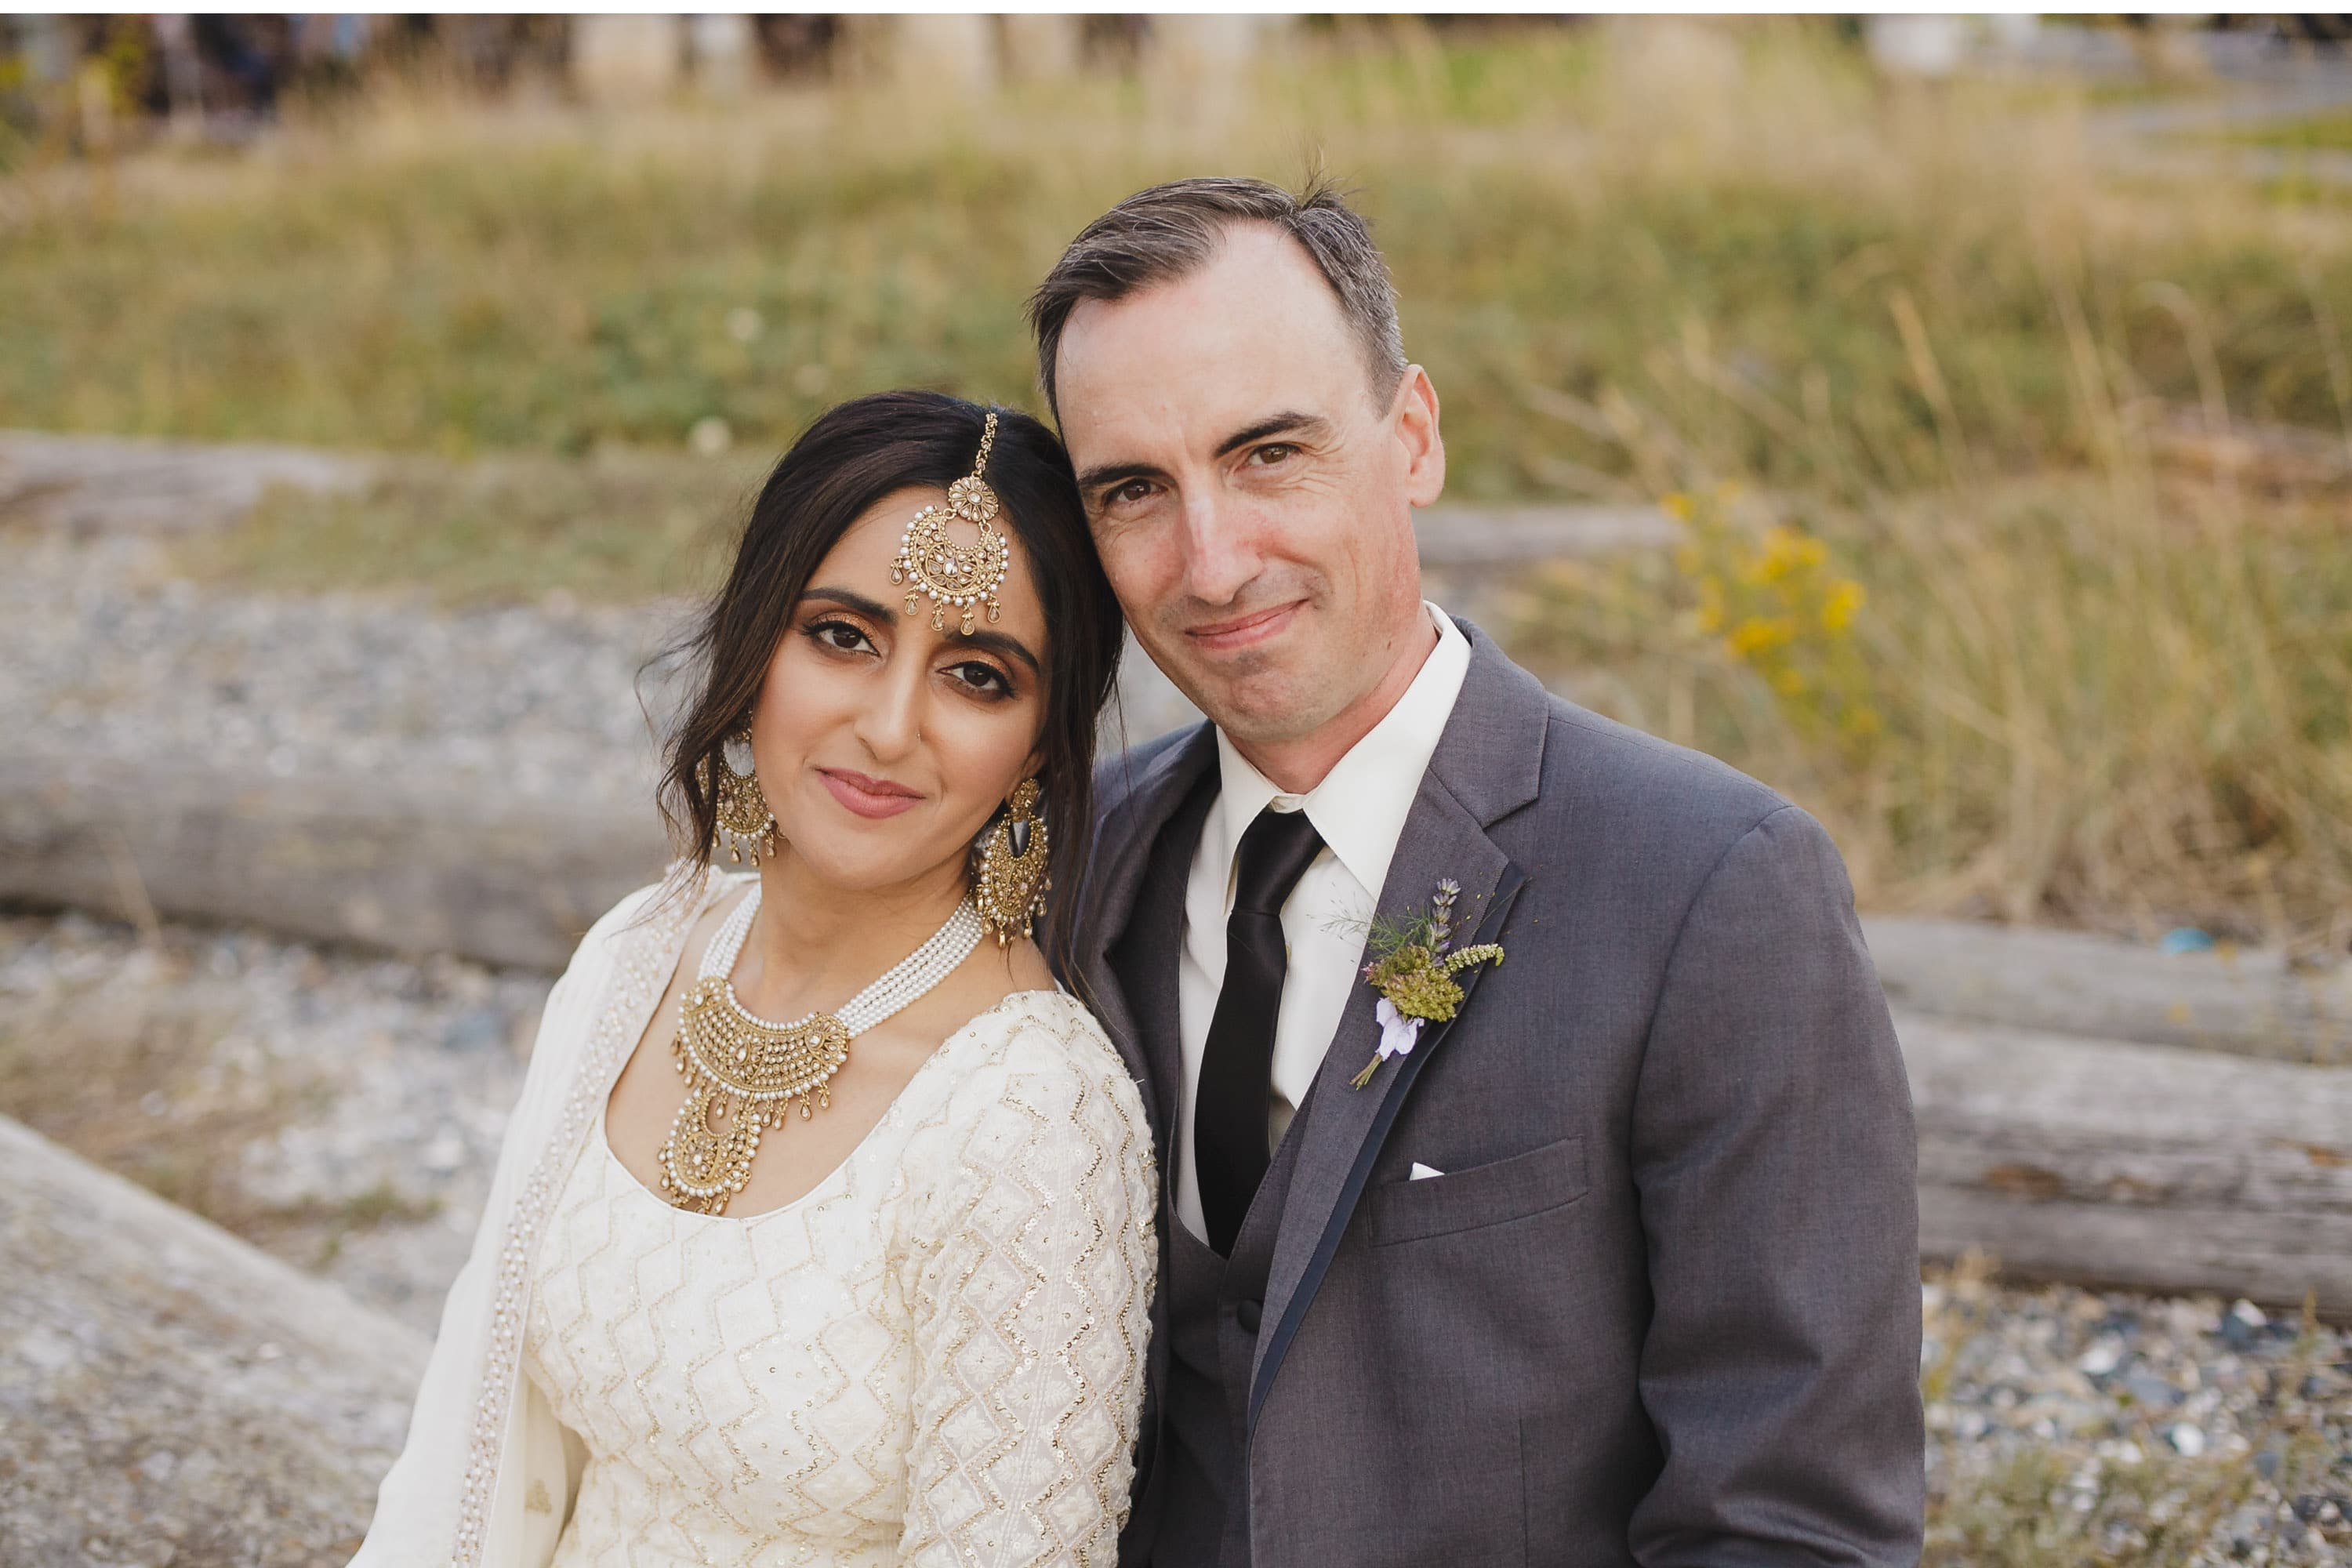 semiahmoo wedding, ethnic wedding, indian wedding, semiahmoo indian wedding, mehendi, mehendi wedding, wedding photo, pnw wedding, indian wedding jewelry, bellingham wedding photographer, henna, wedding henna